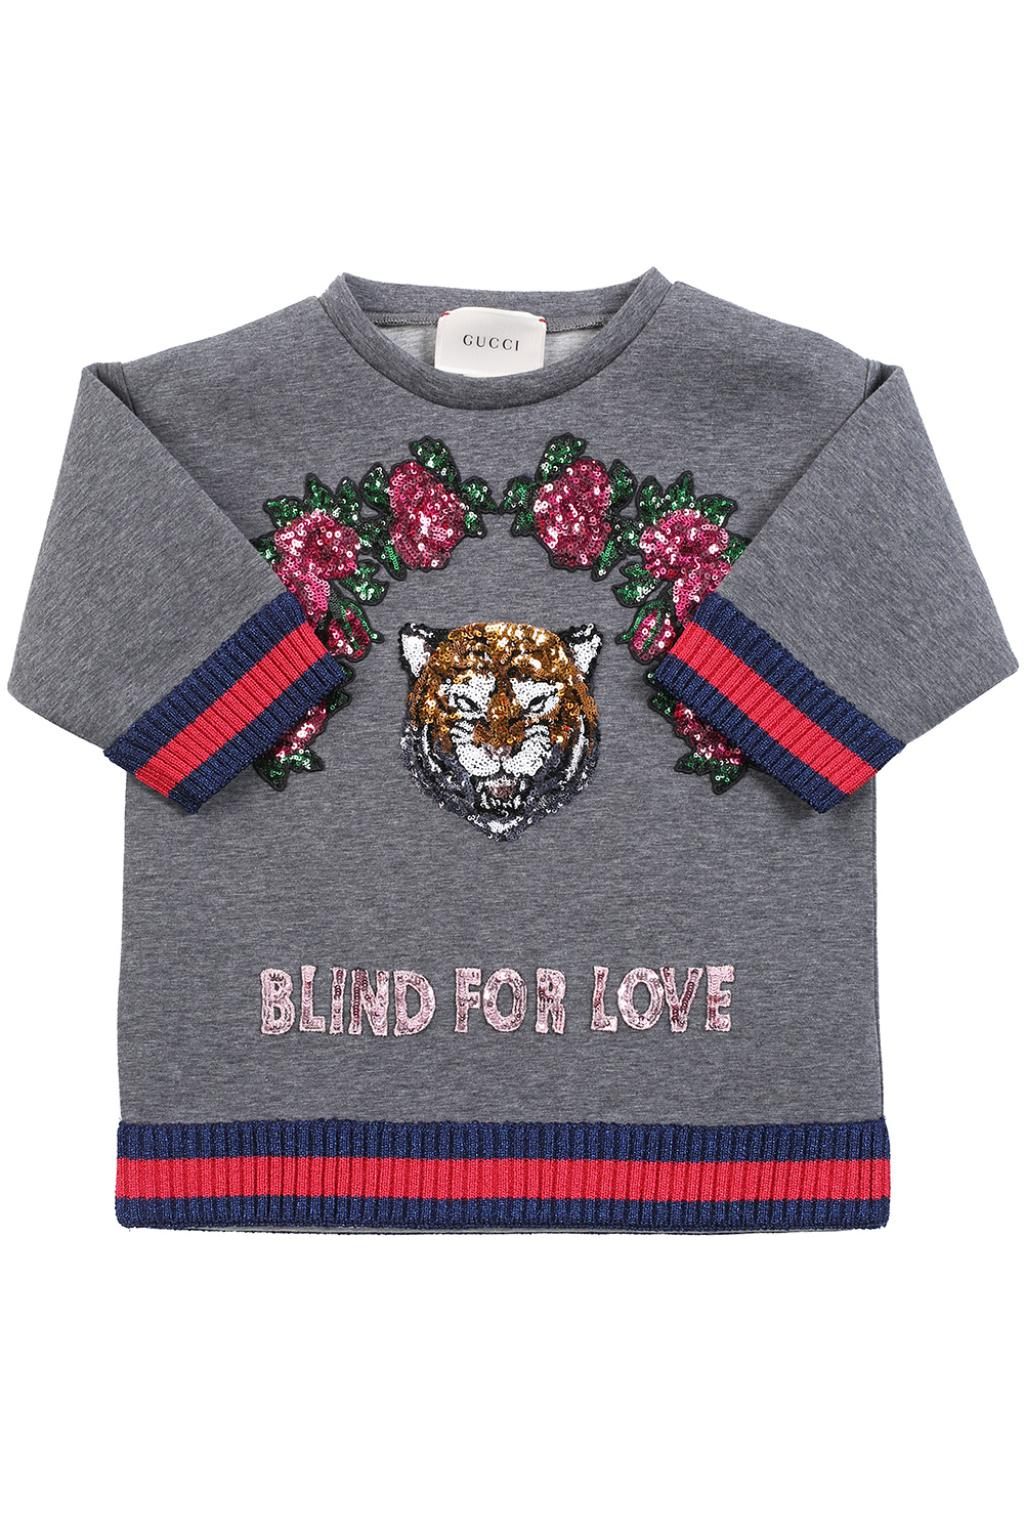 Gucci Kids Appliqued sweatshirt